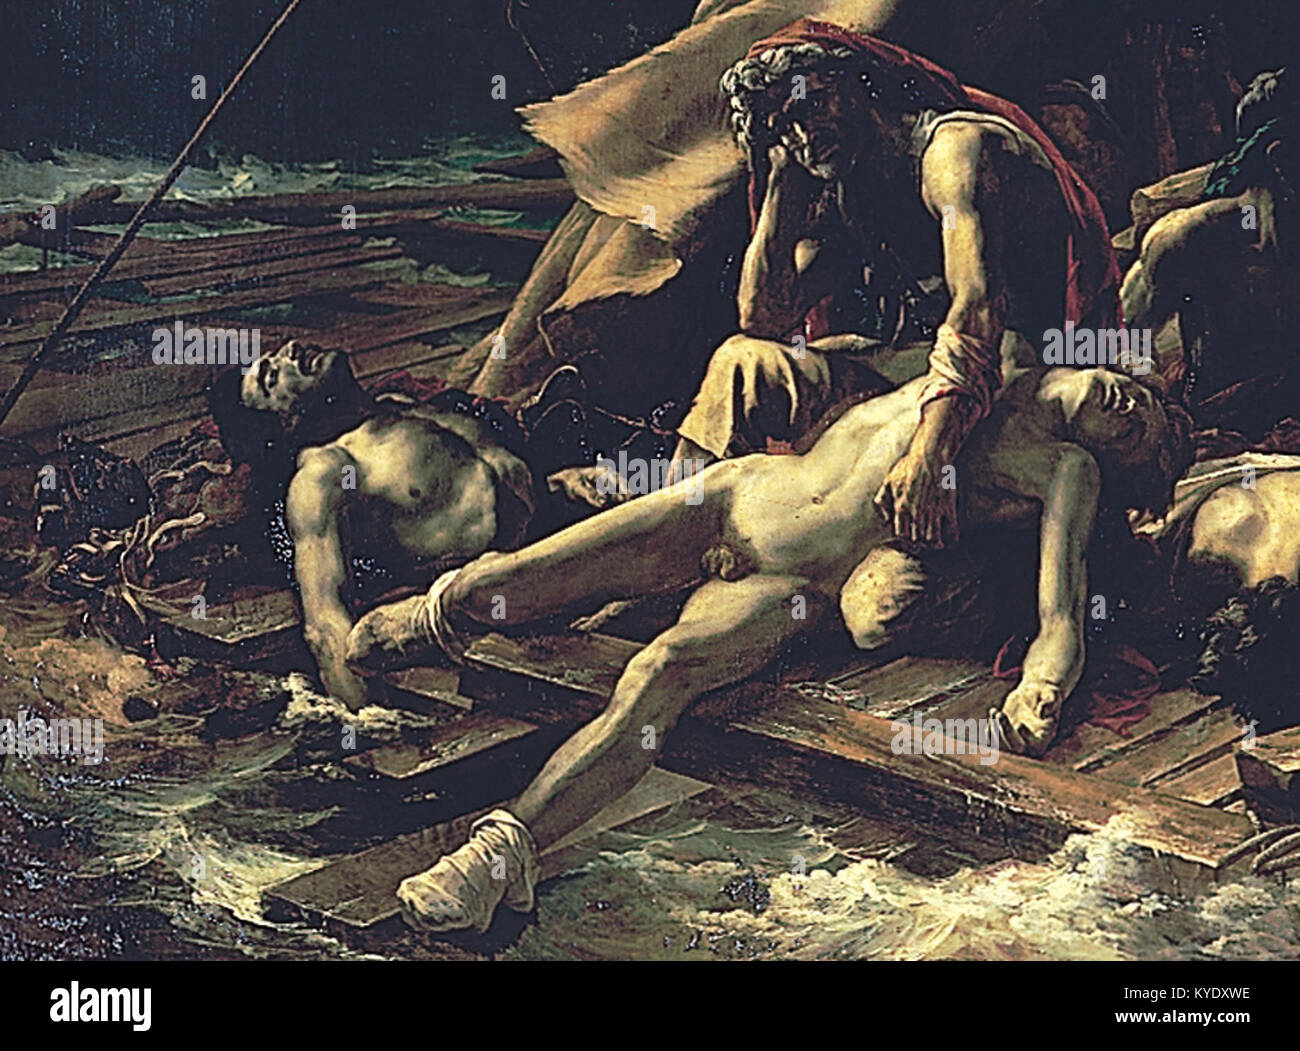 a brief history of theodore gericaults raft of the medusa painting The raft of the medusa (1818-1819) by theodore gericault image credit: wikipedia.